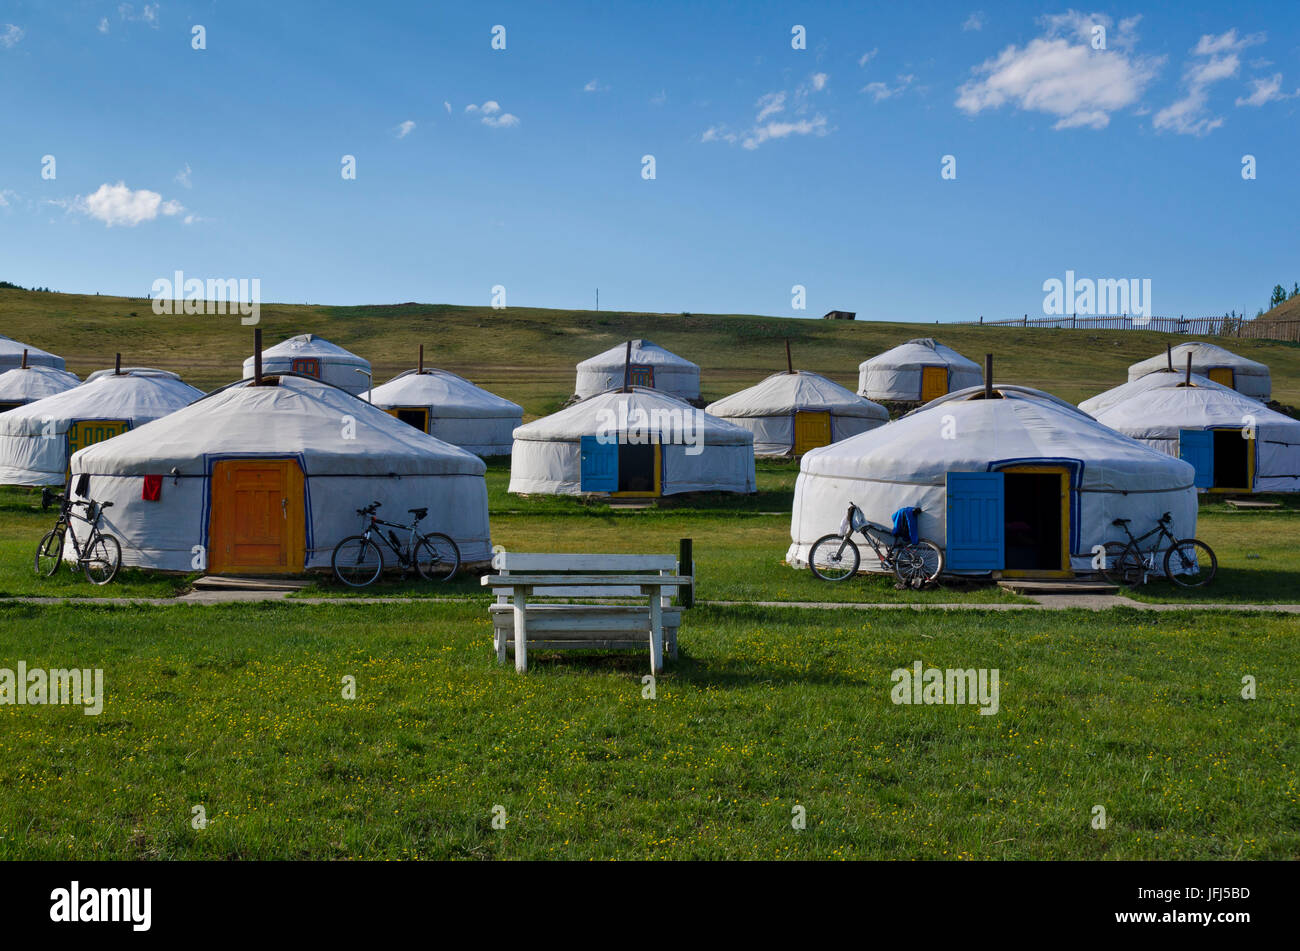 Mongolia, Central Asia, yurt camp at Tsenkher, - Stock Image